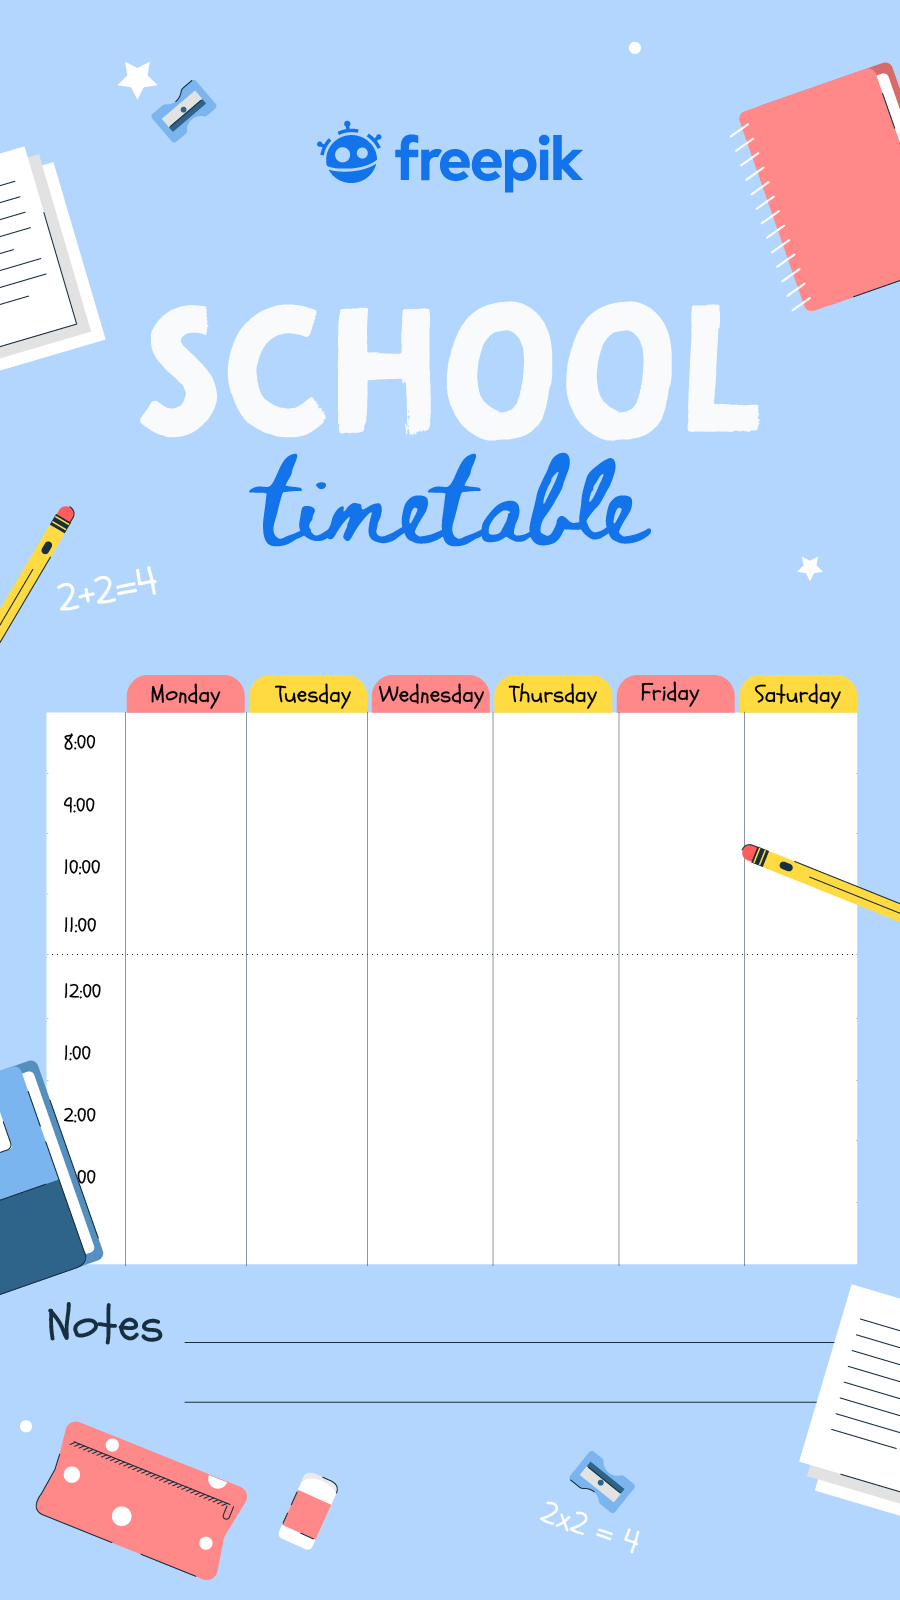 Enjoy These School Timetable Images For Free School Timetable Back To School Images School Supplies List [ 1600 x 900 Pixel ]